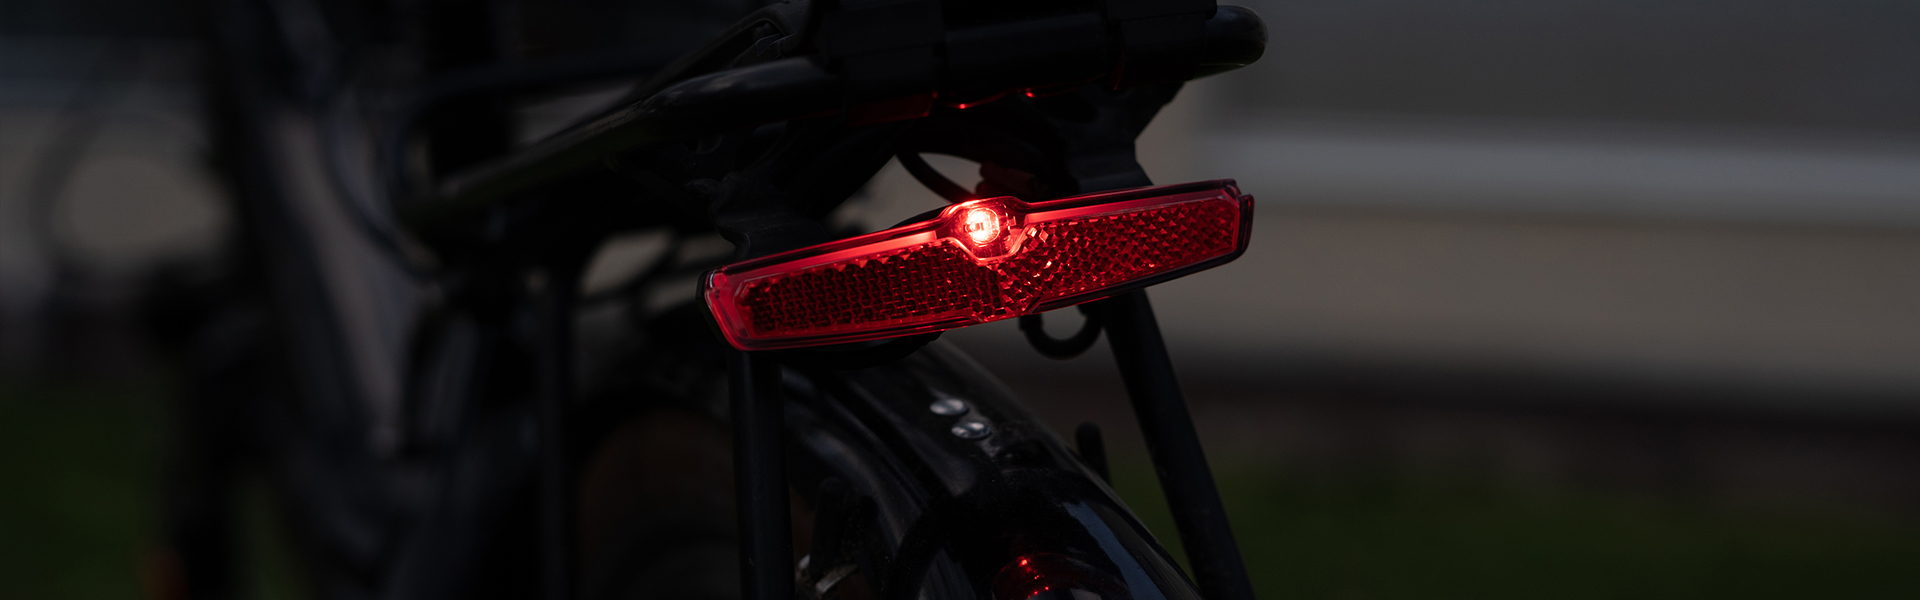 LF-10 Sate-Lite USB rechargeable bicycle headlight